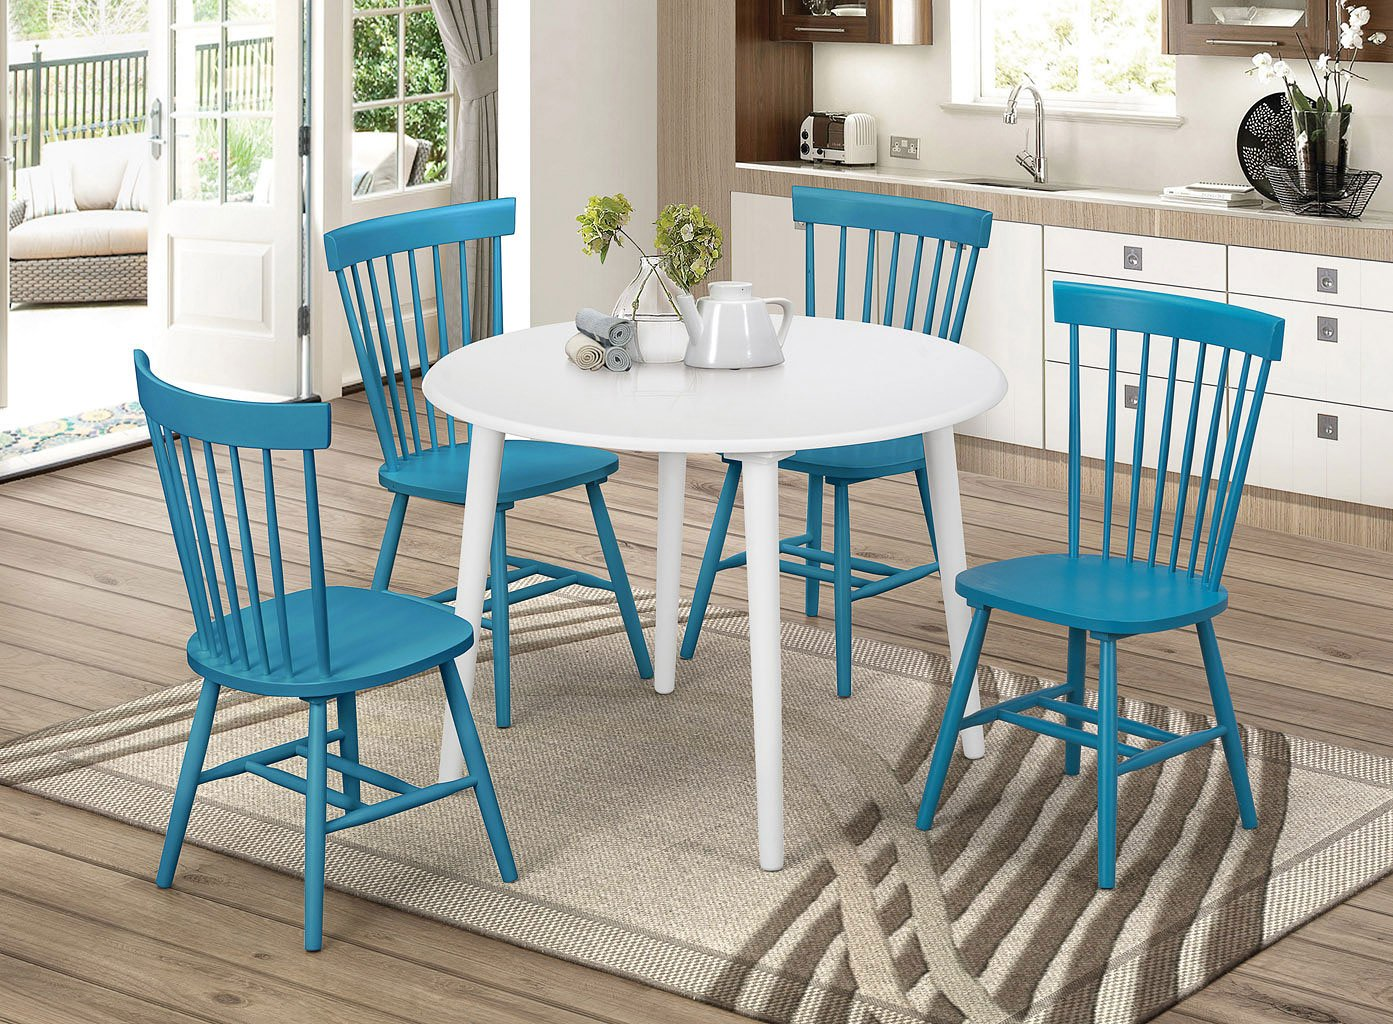 Teal Kitchen Chairs Emmett Round Dining Room Set W Teal Chairs Casual